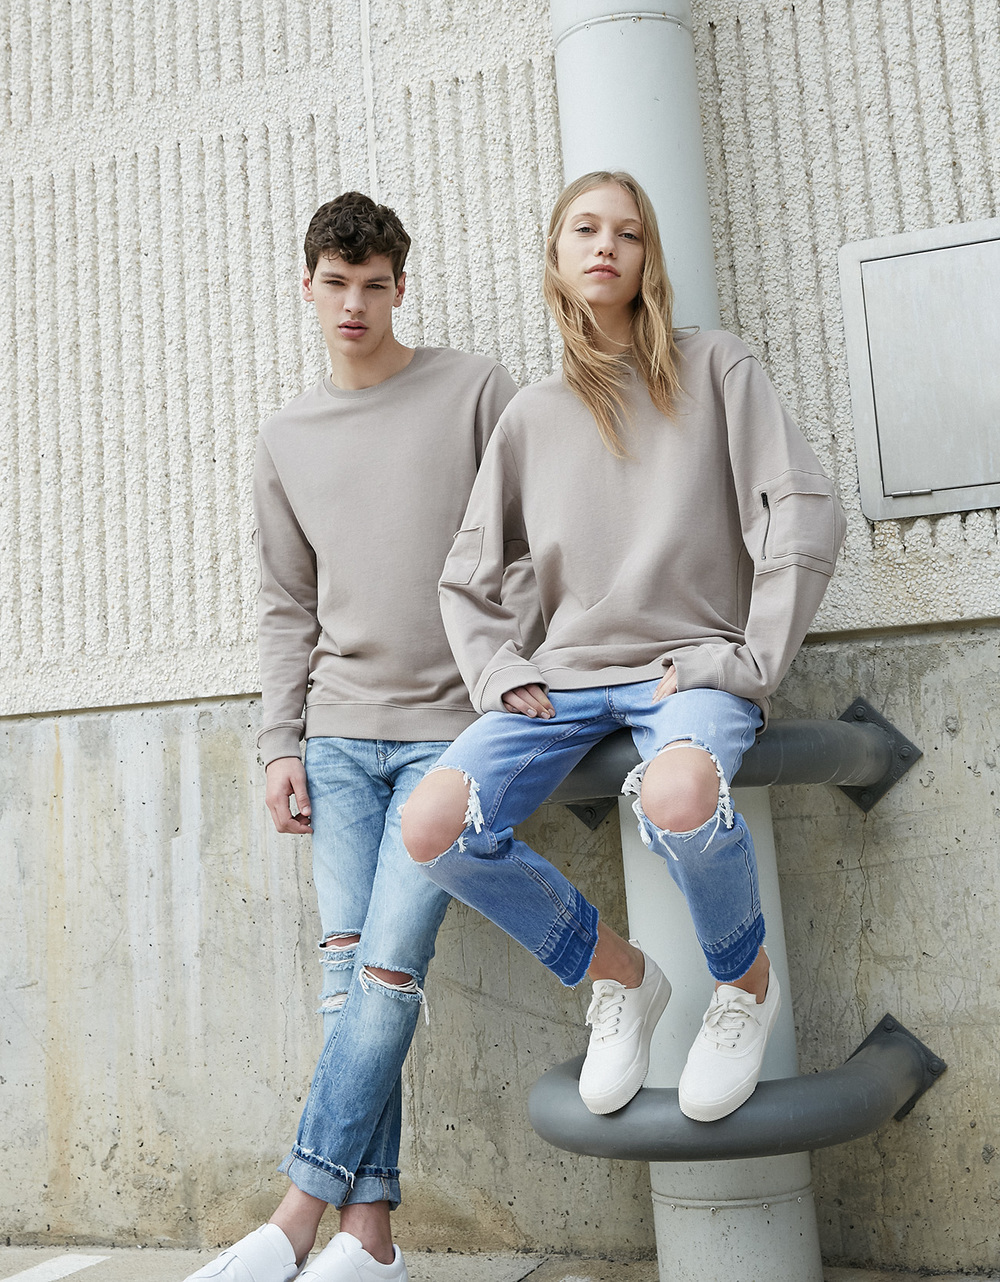 Bershka - Everyone (1).jpg